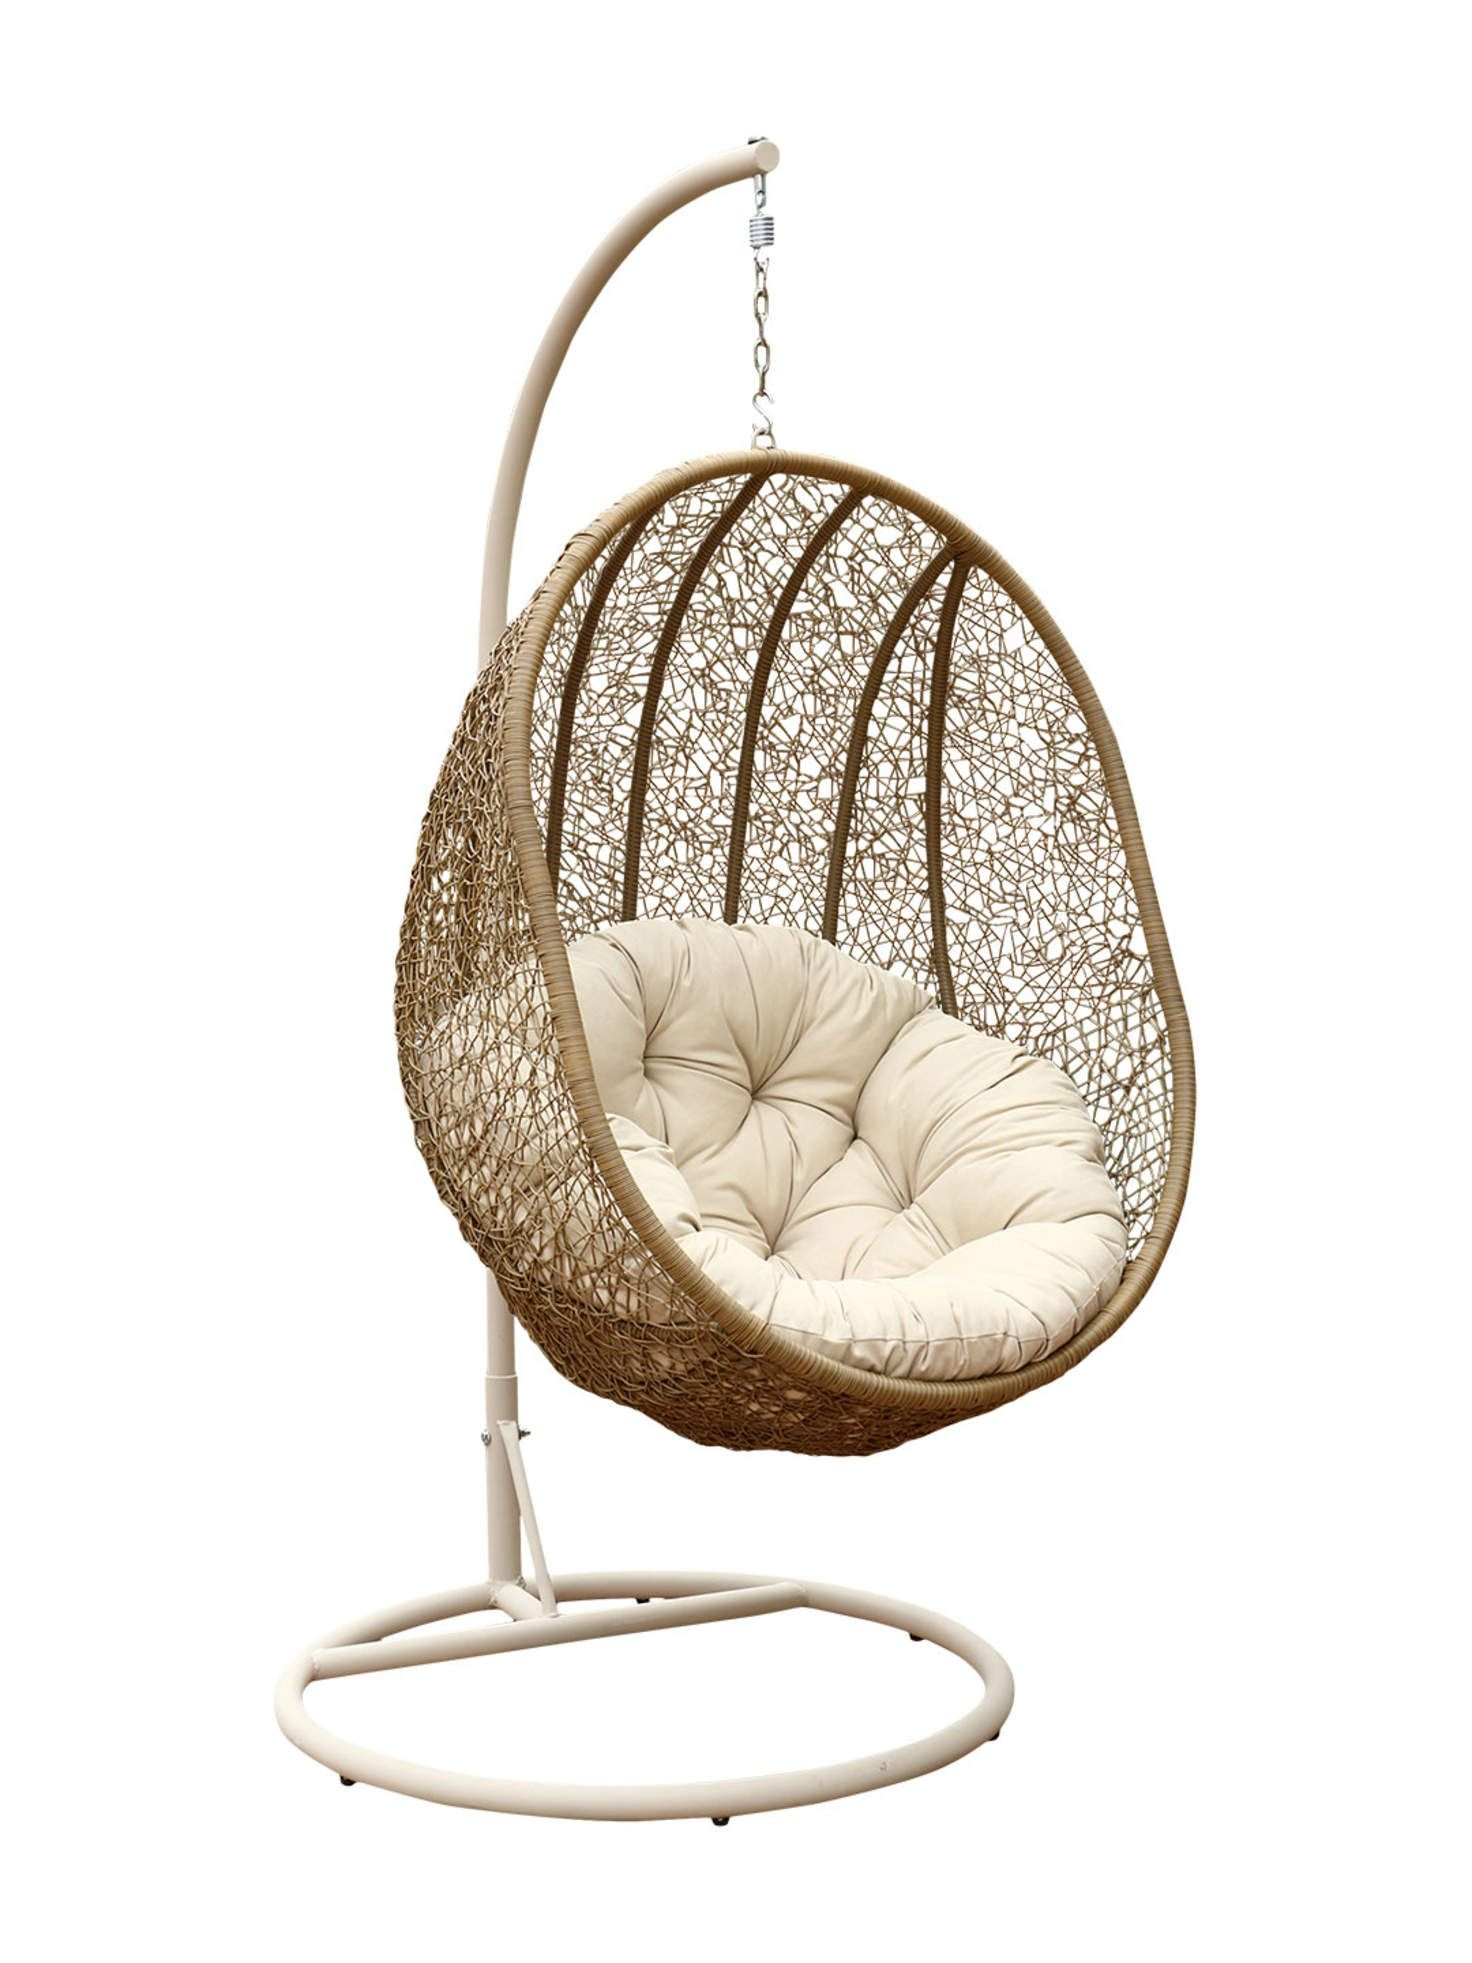 Lamport Swinging Egg Chair Swinging chair, Chair